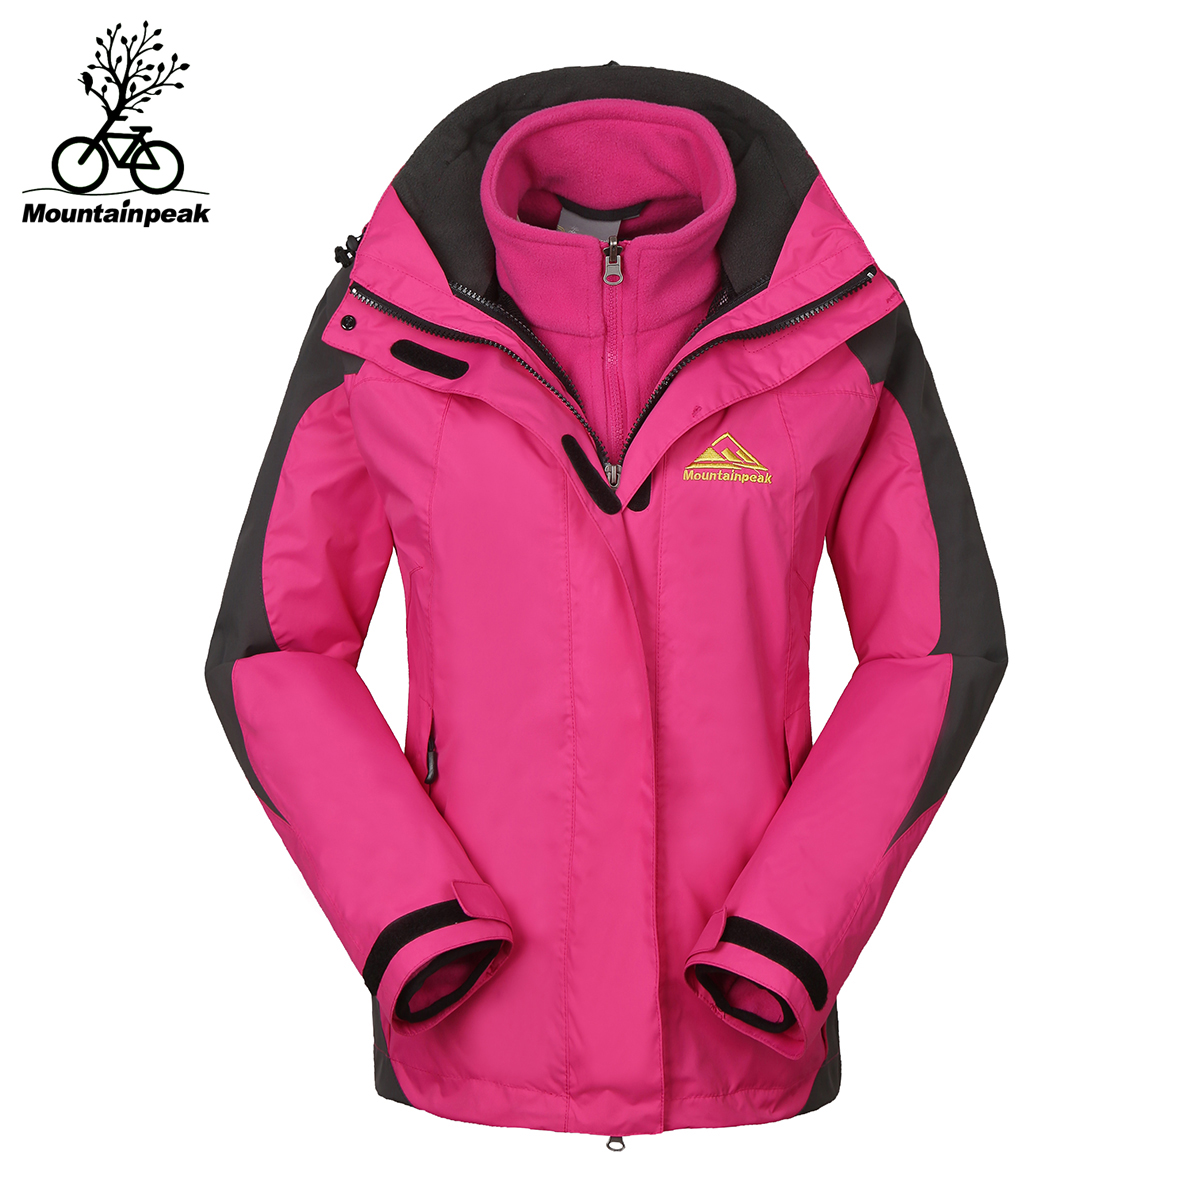 Mountainpeak 4 color waterproof outdoor clothing two-piece women wear to keep warm air autumn winter snow riding jacket